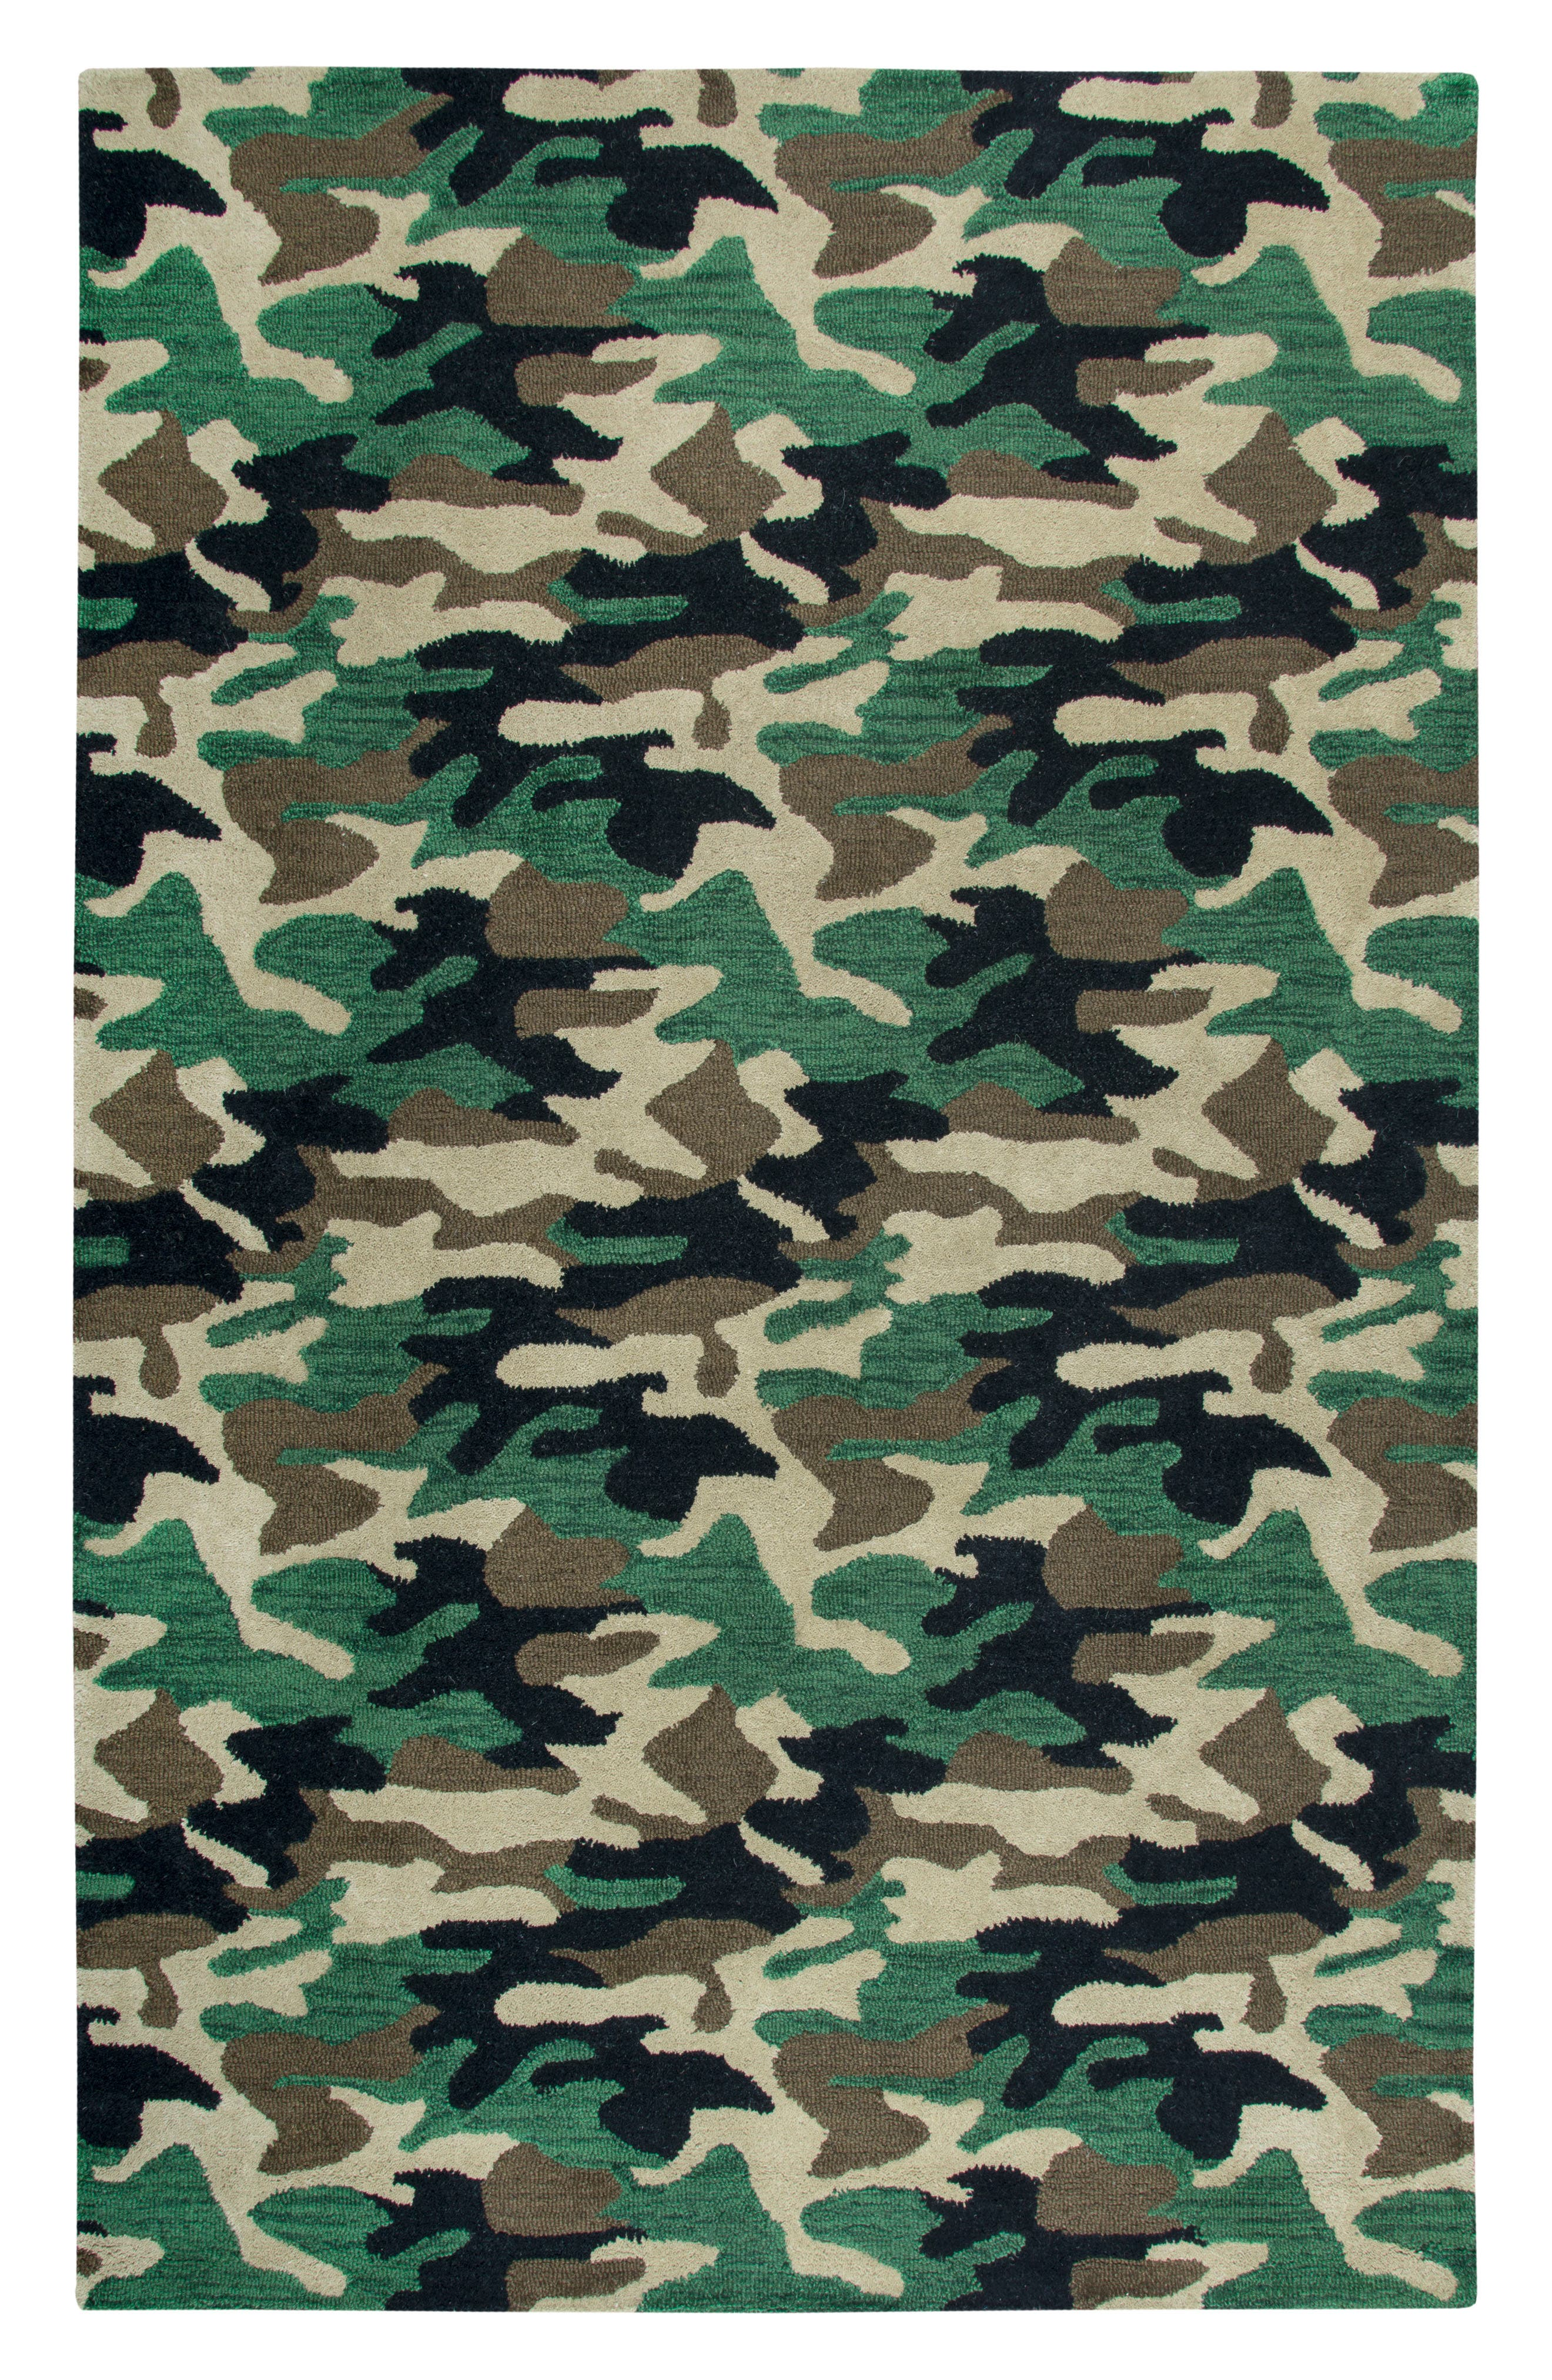 Rizzy Home Play Day Camouflage Rug